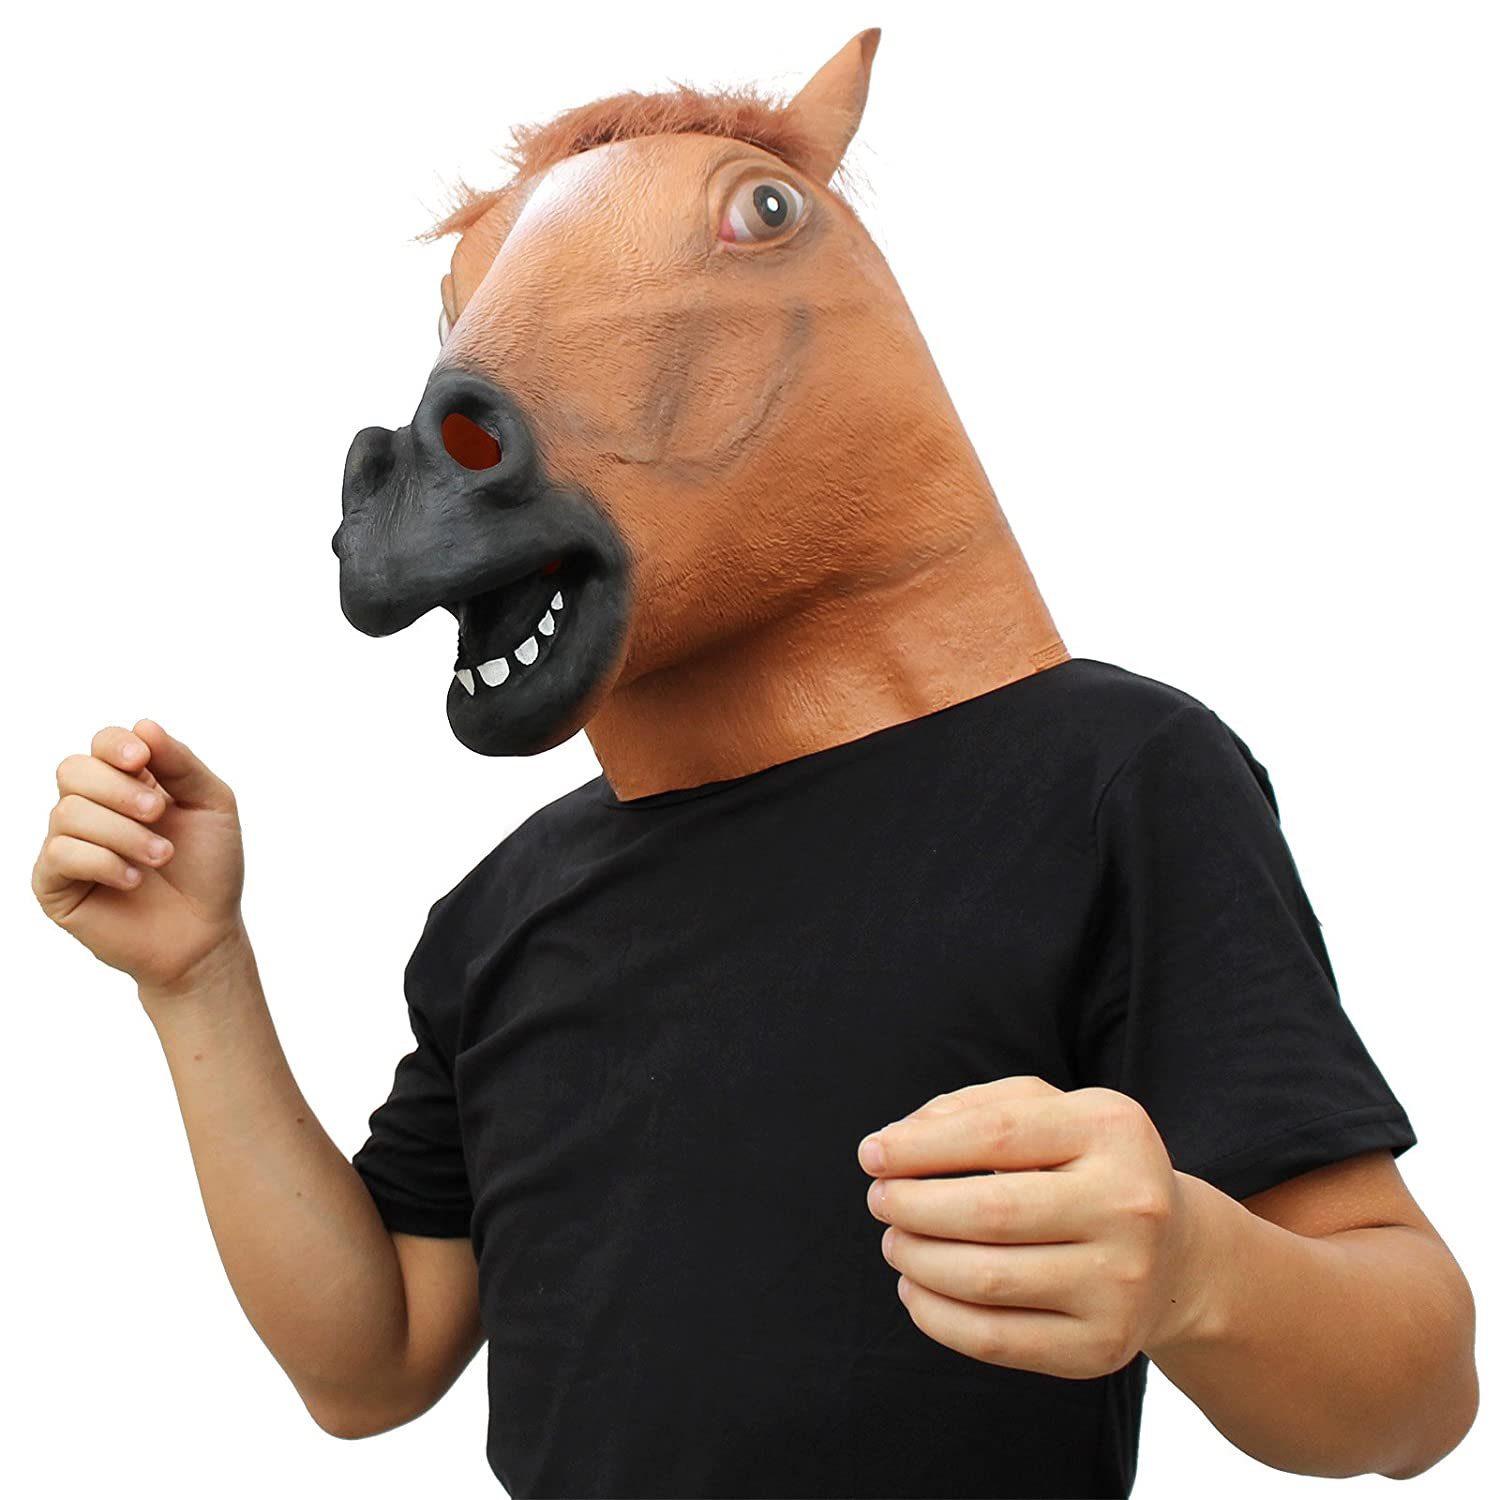 CreepyParty Novelty Halloween Costume Party Animal Head Mask Brown Horse (Silent) Seaton STMask